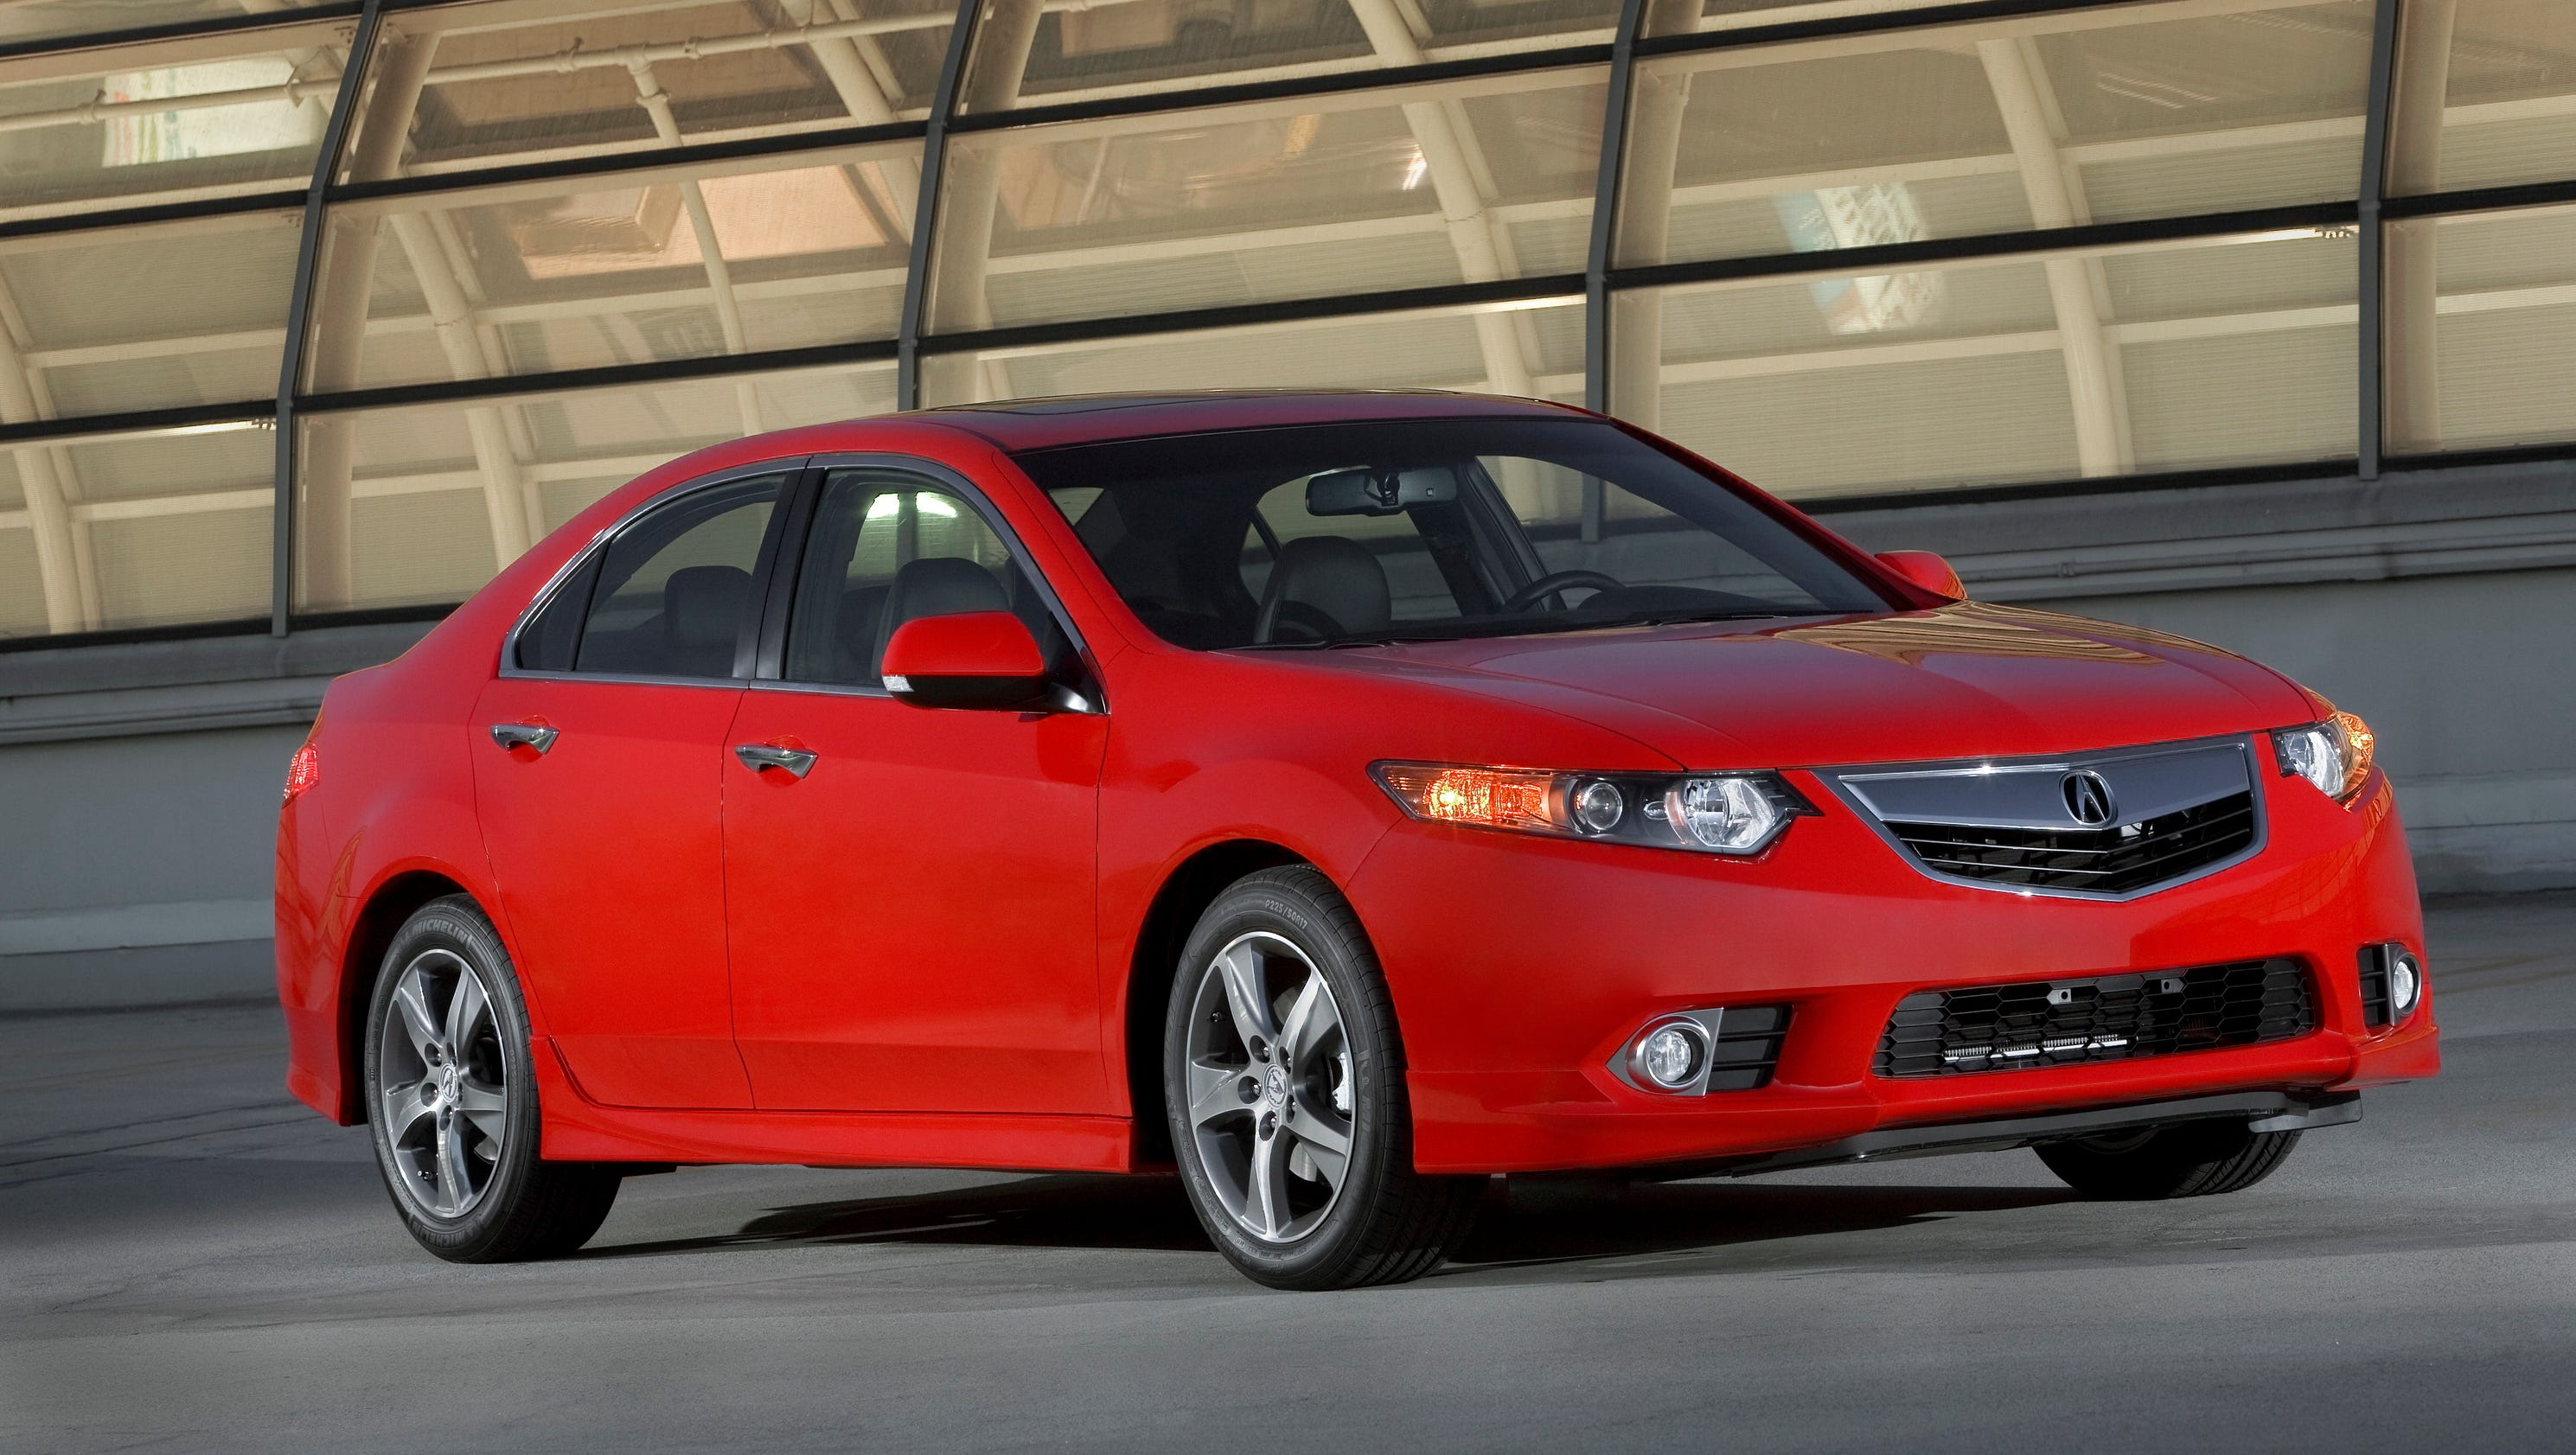 Best Used Cars Under 15000 >> Edmunds recommends 15 used cars for under $15K